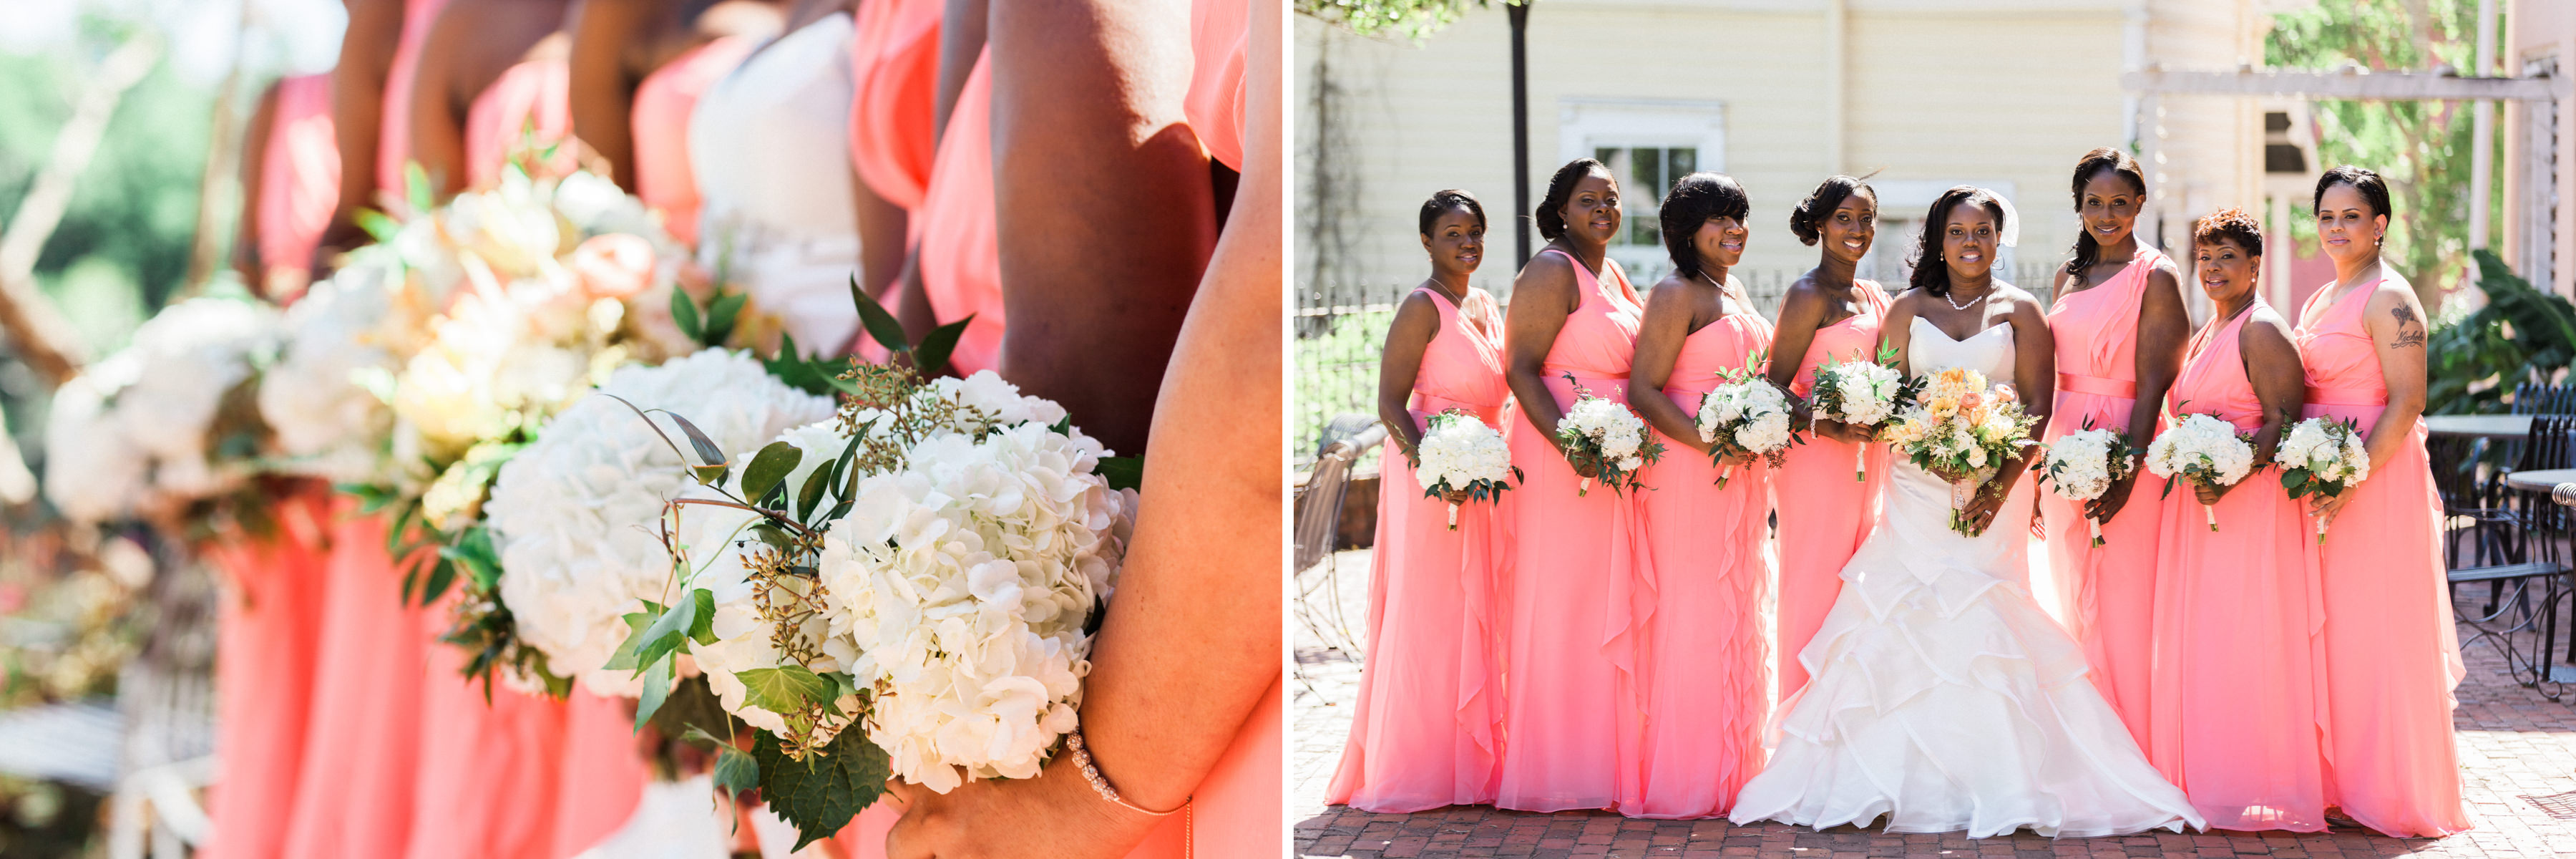 FLOWERS_WEDDING_SELMA_ALABAMA_WEDDING_PHOTOGRAPHY_44